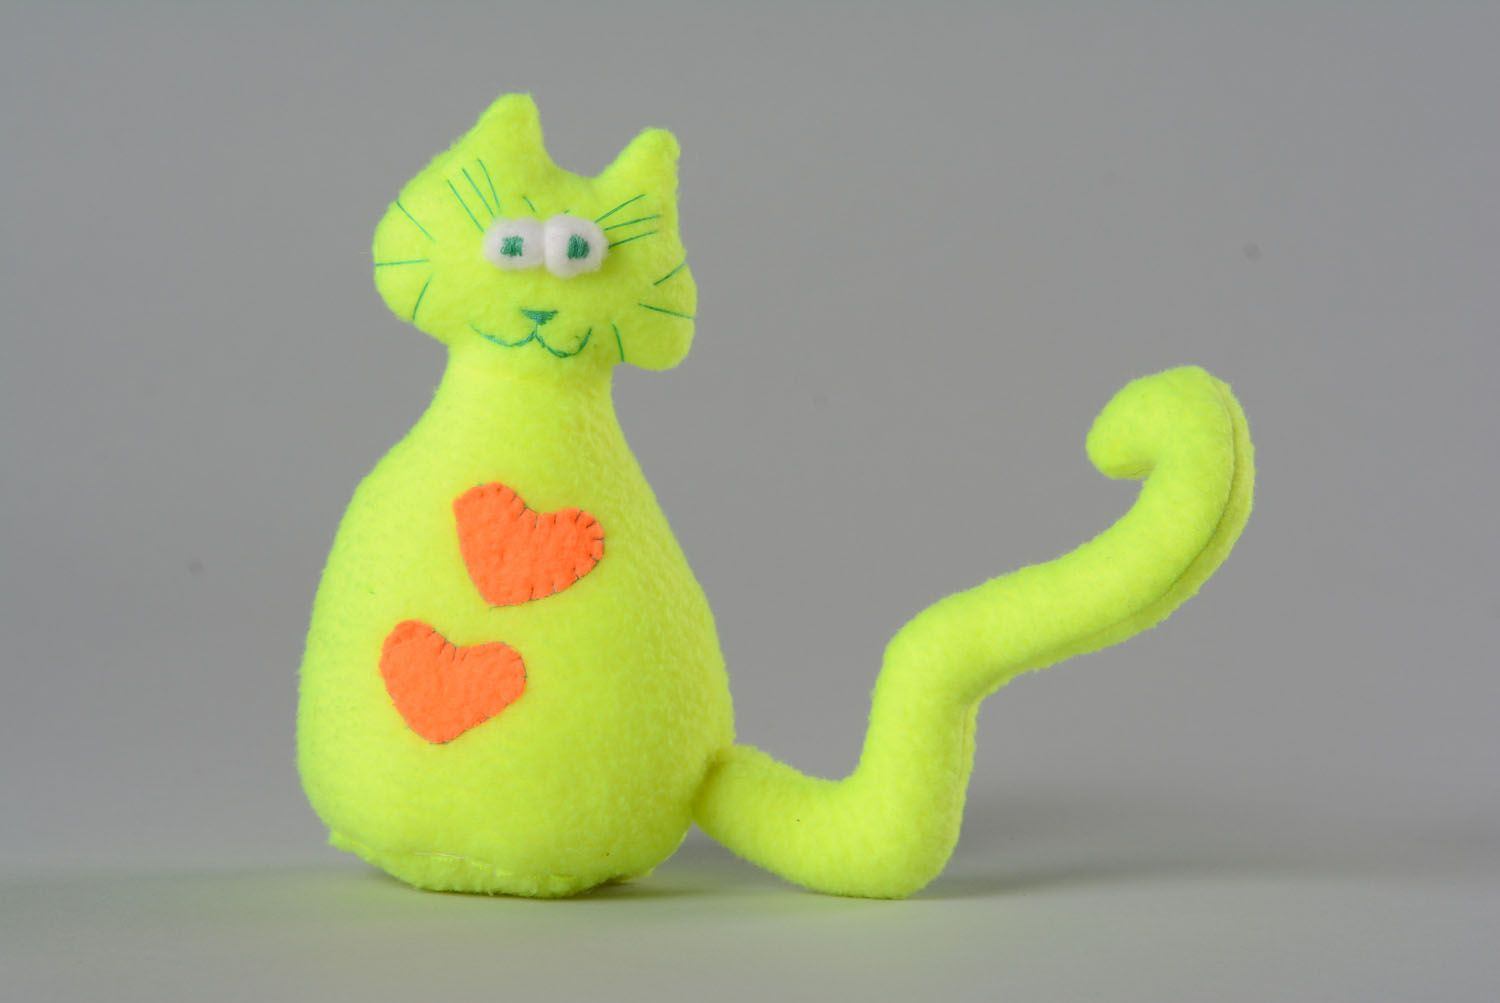 Soft toy in the shape of a yellow and green cat photo 1